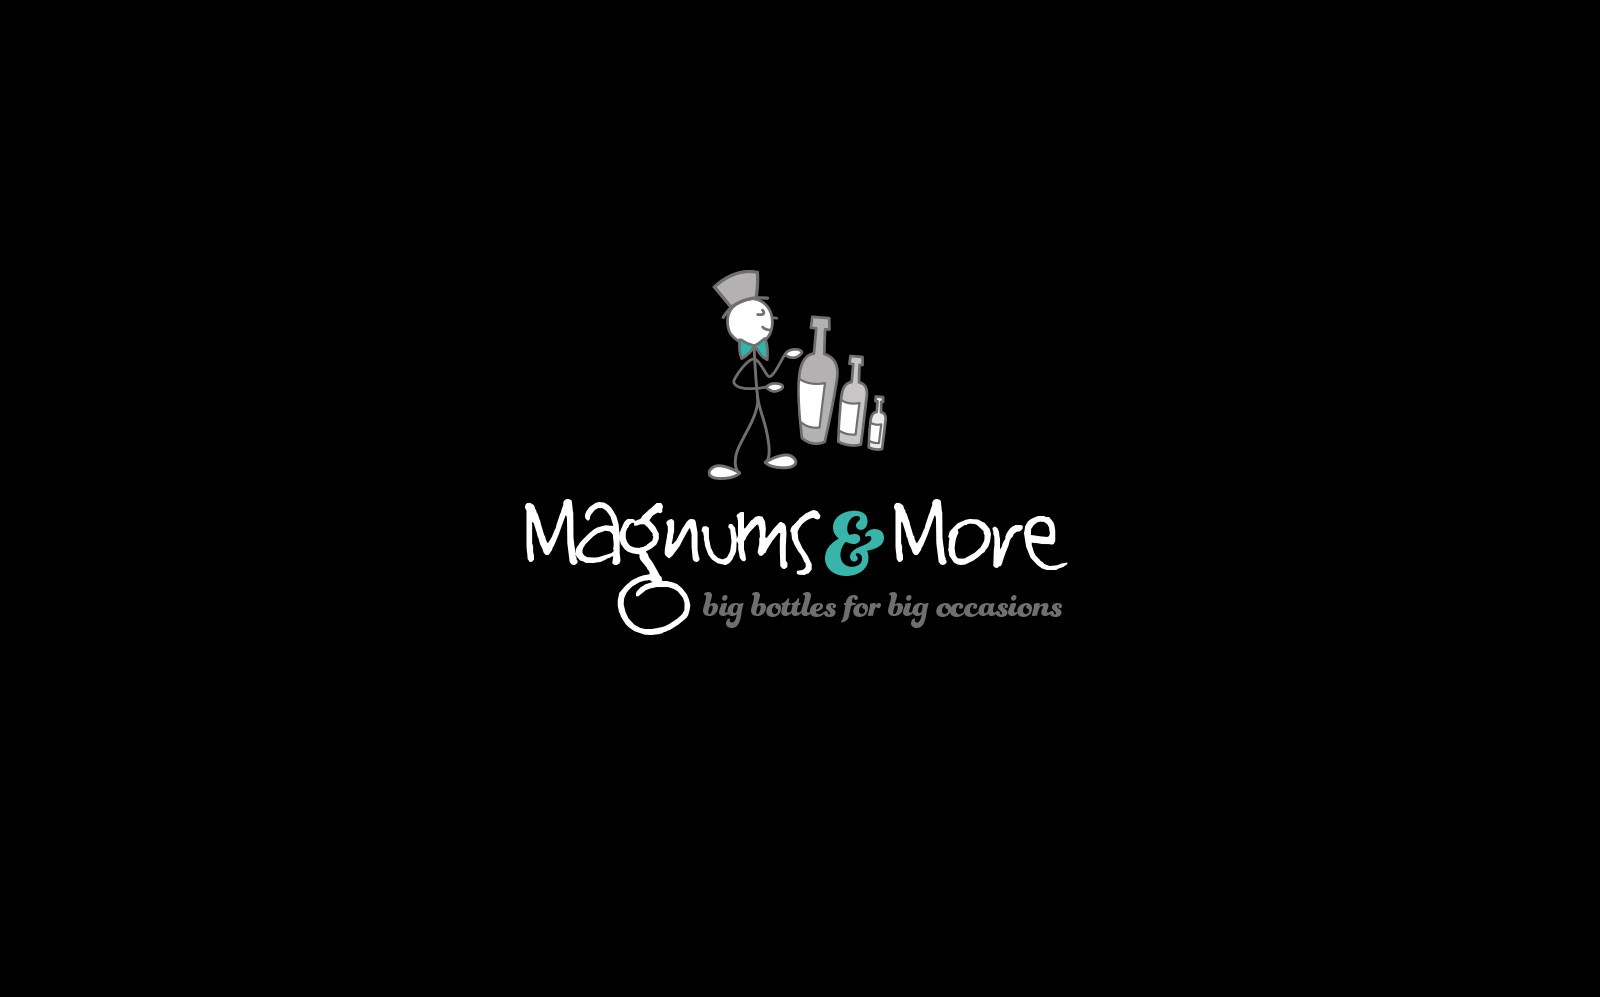 magnums & more